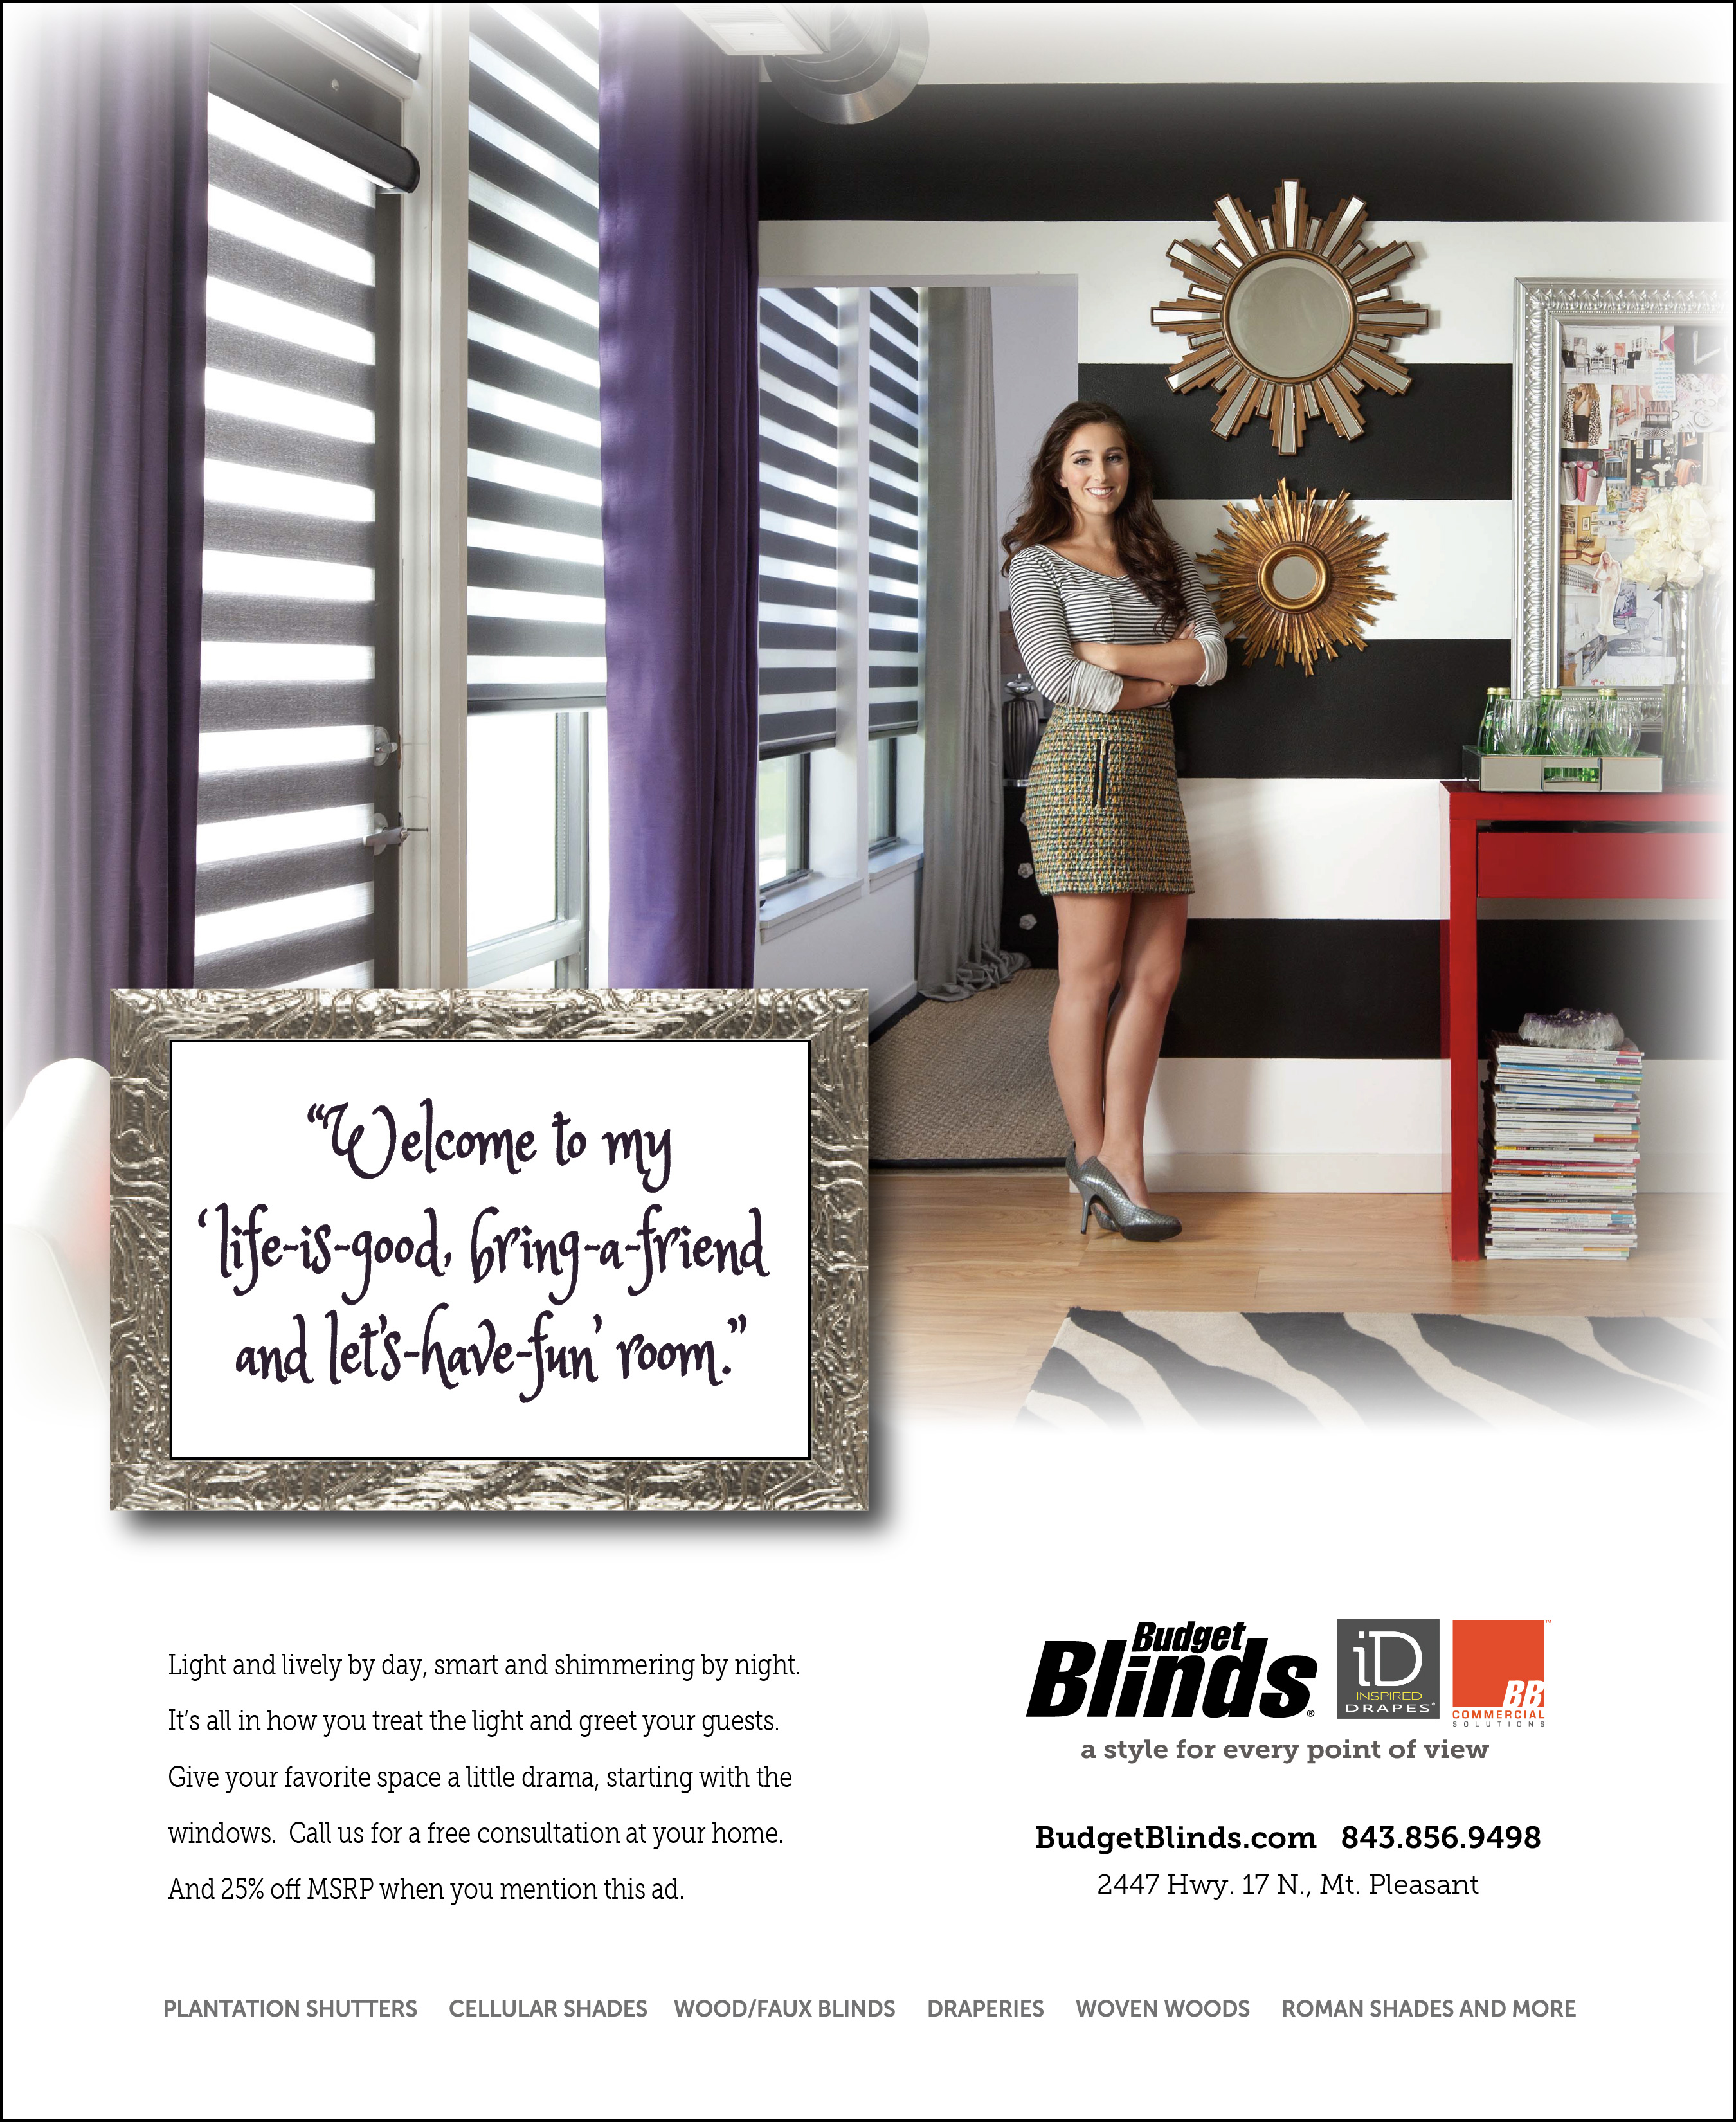 dressed a alustra buy in omaha the budget of ne shutters at well window collection vignette shades blinds